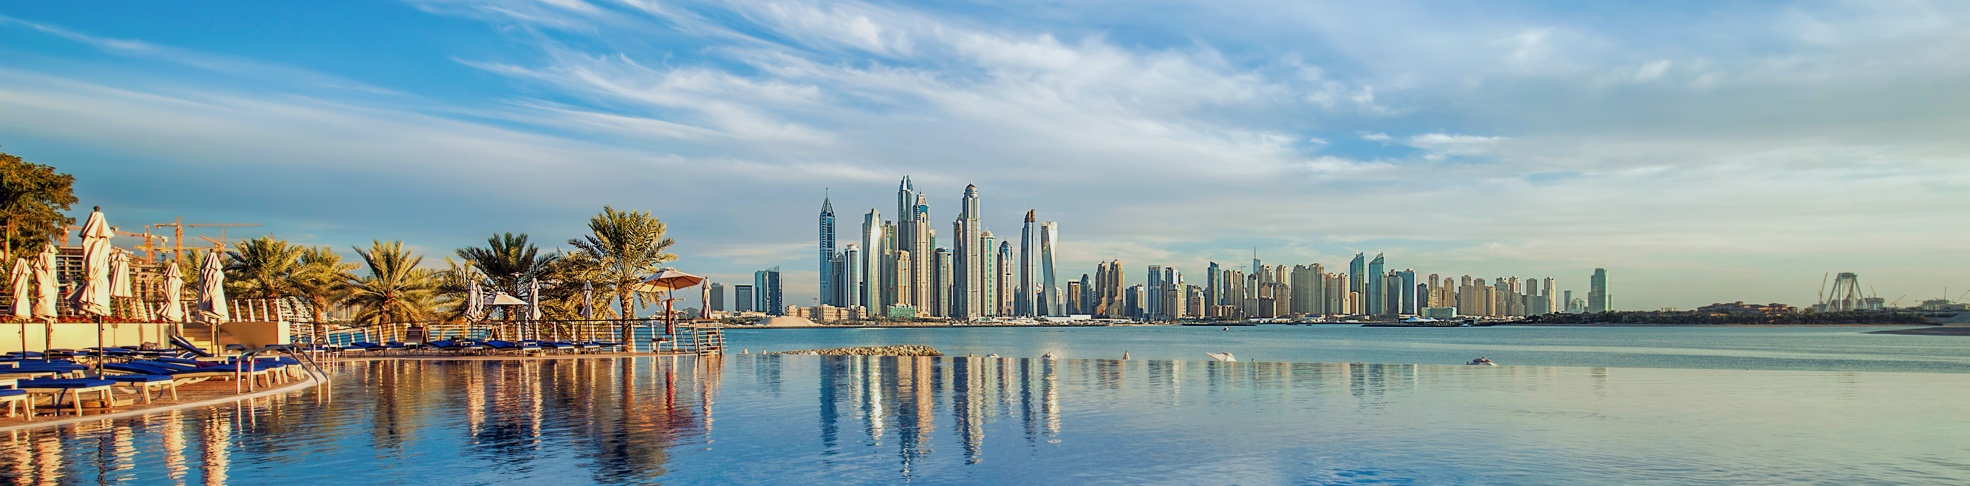 Cheap Dubai Holidays & Deals 2019/2020 | Teletext